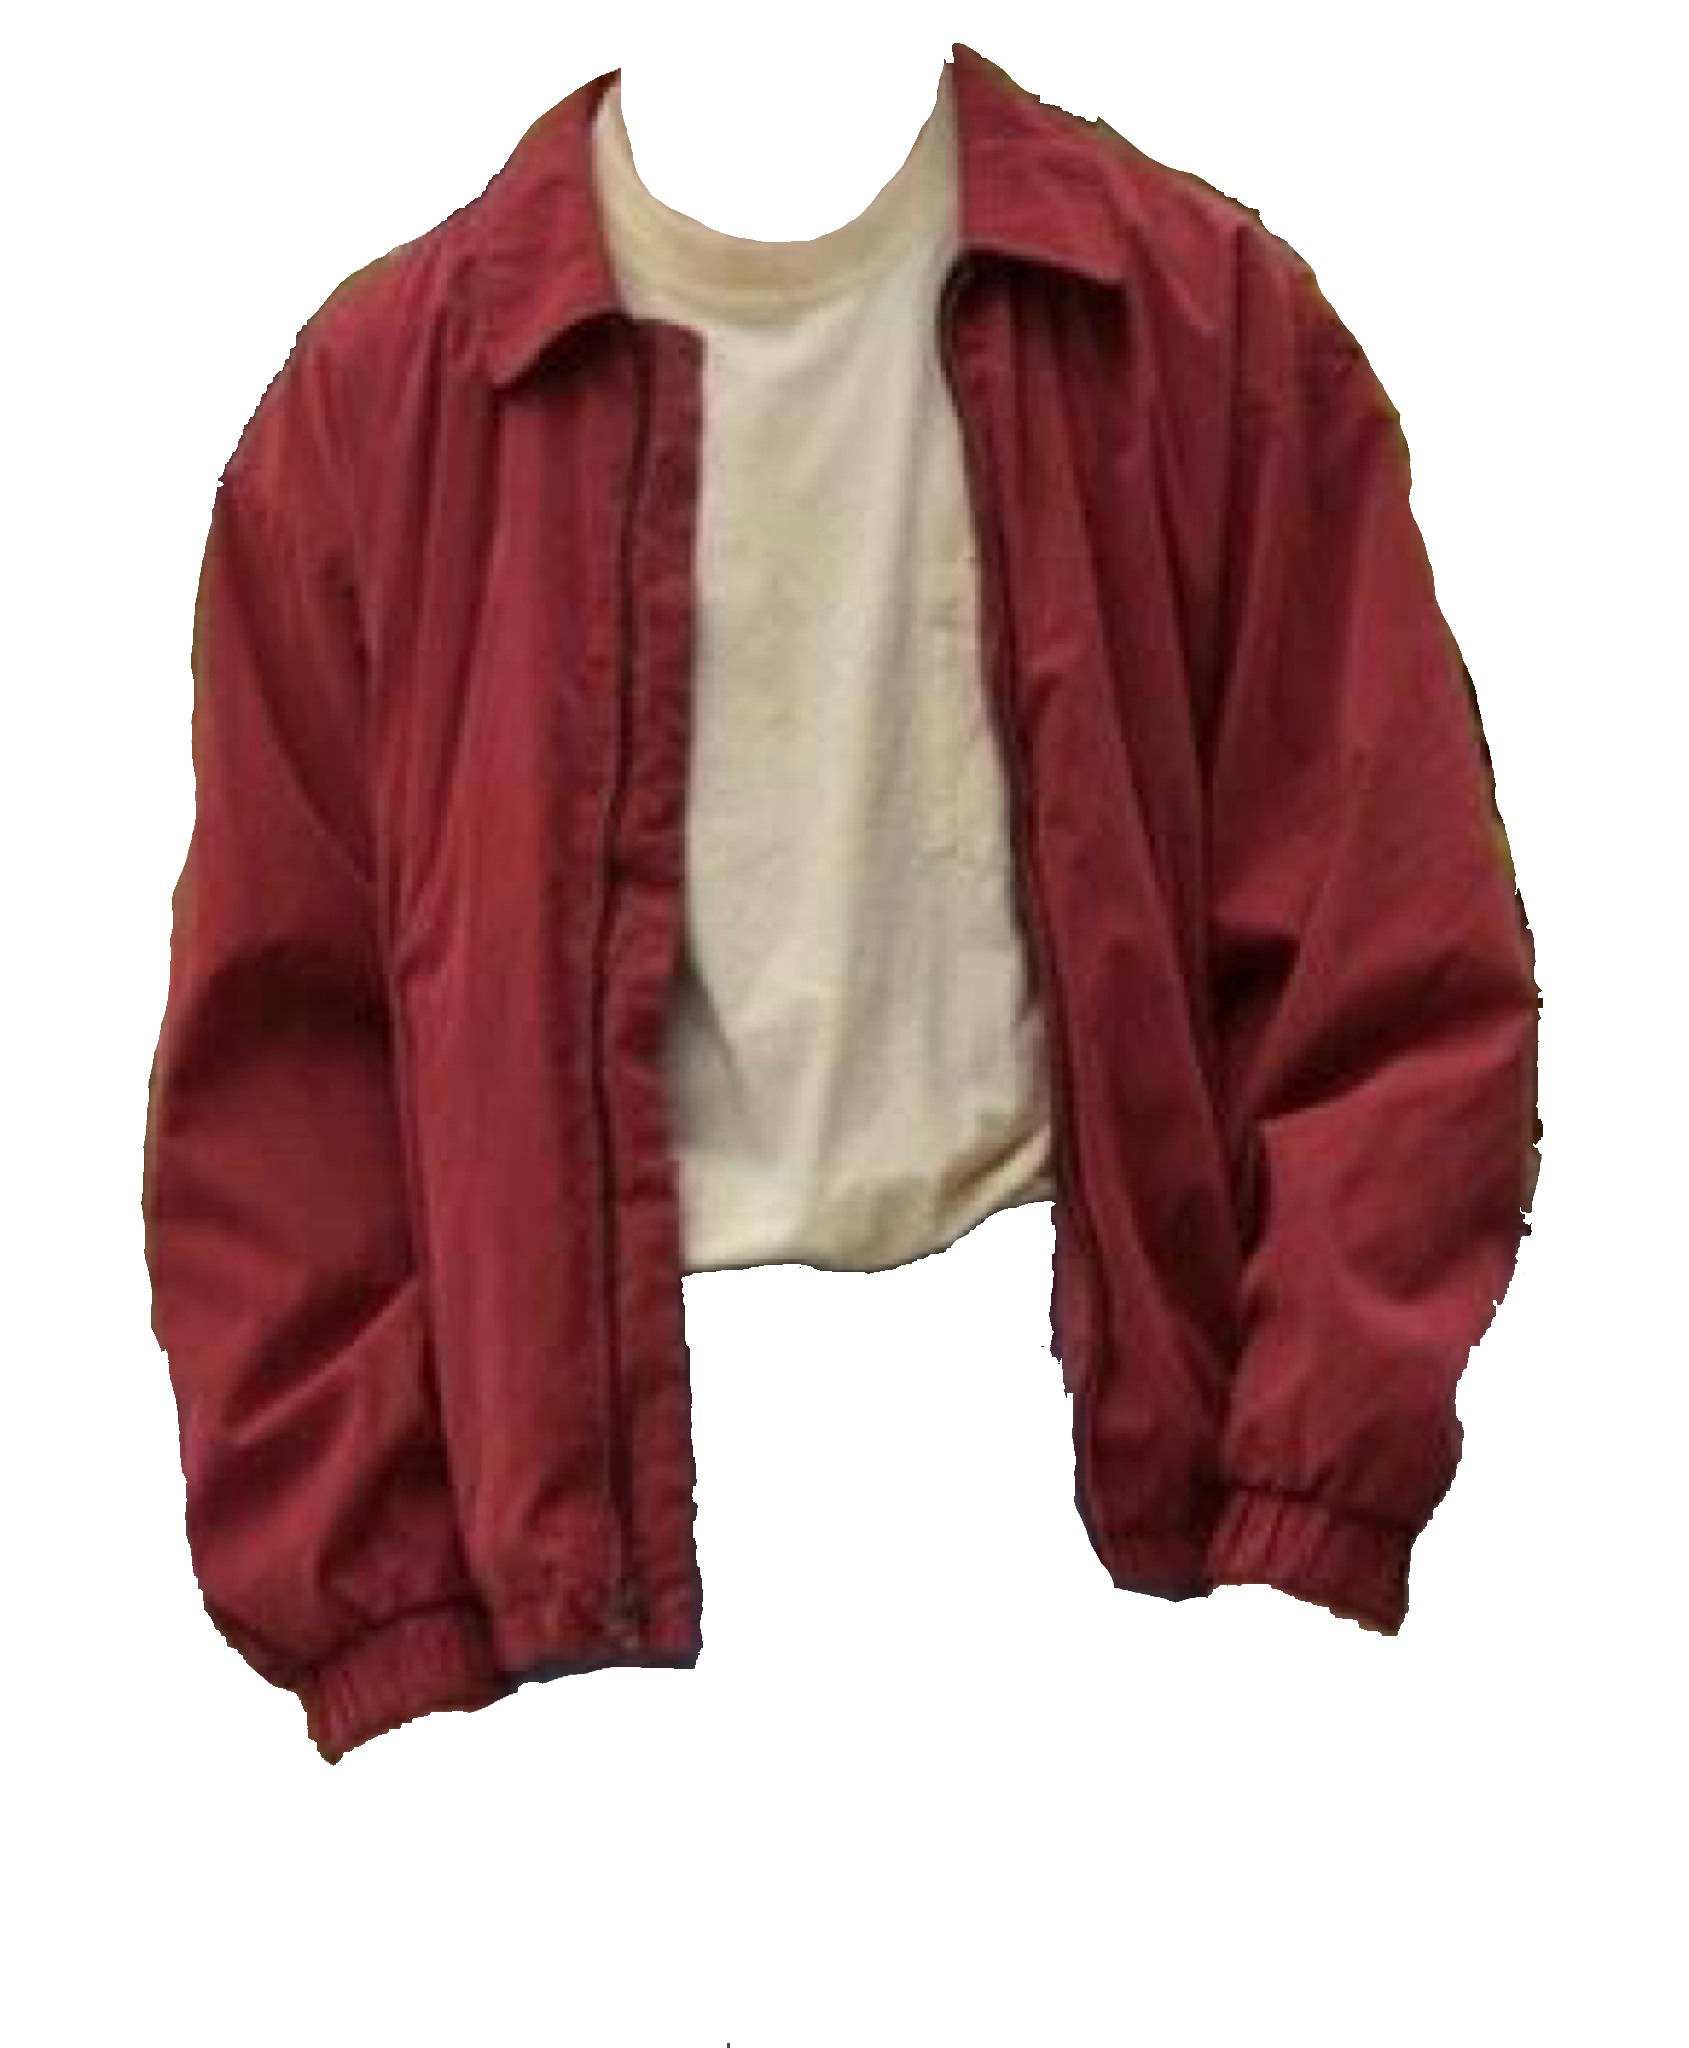 red jacket / polyvore.